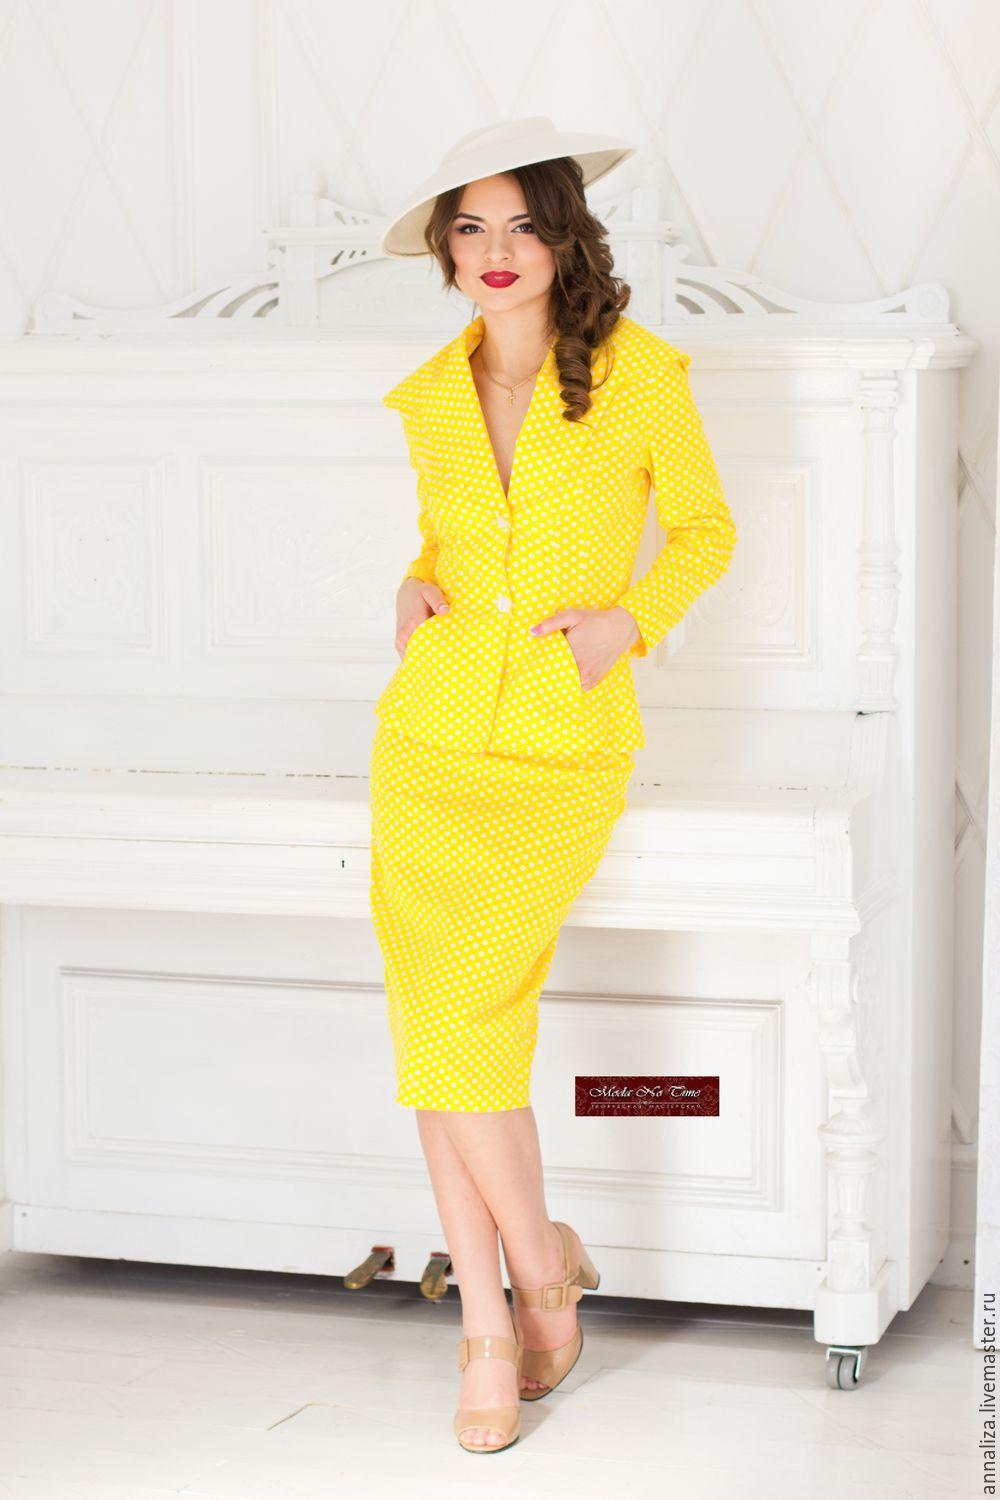 Women's business suit in a retro style 'Pea', Suits, Moscow,  Фото №1